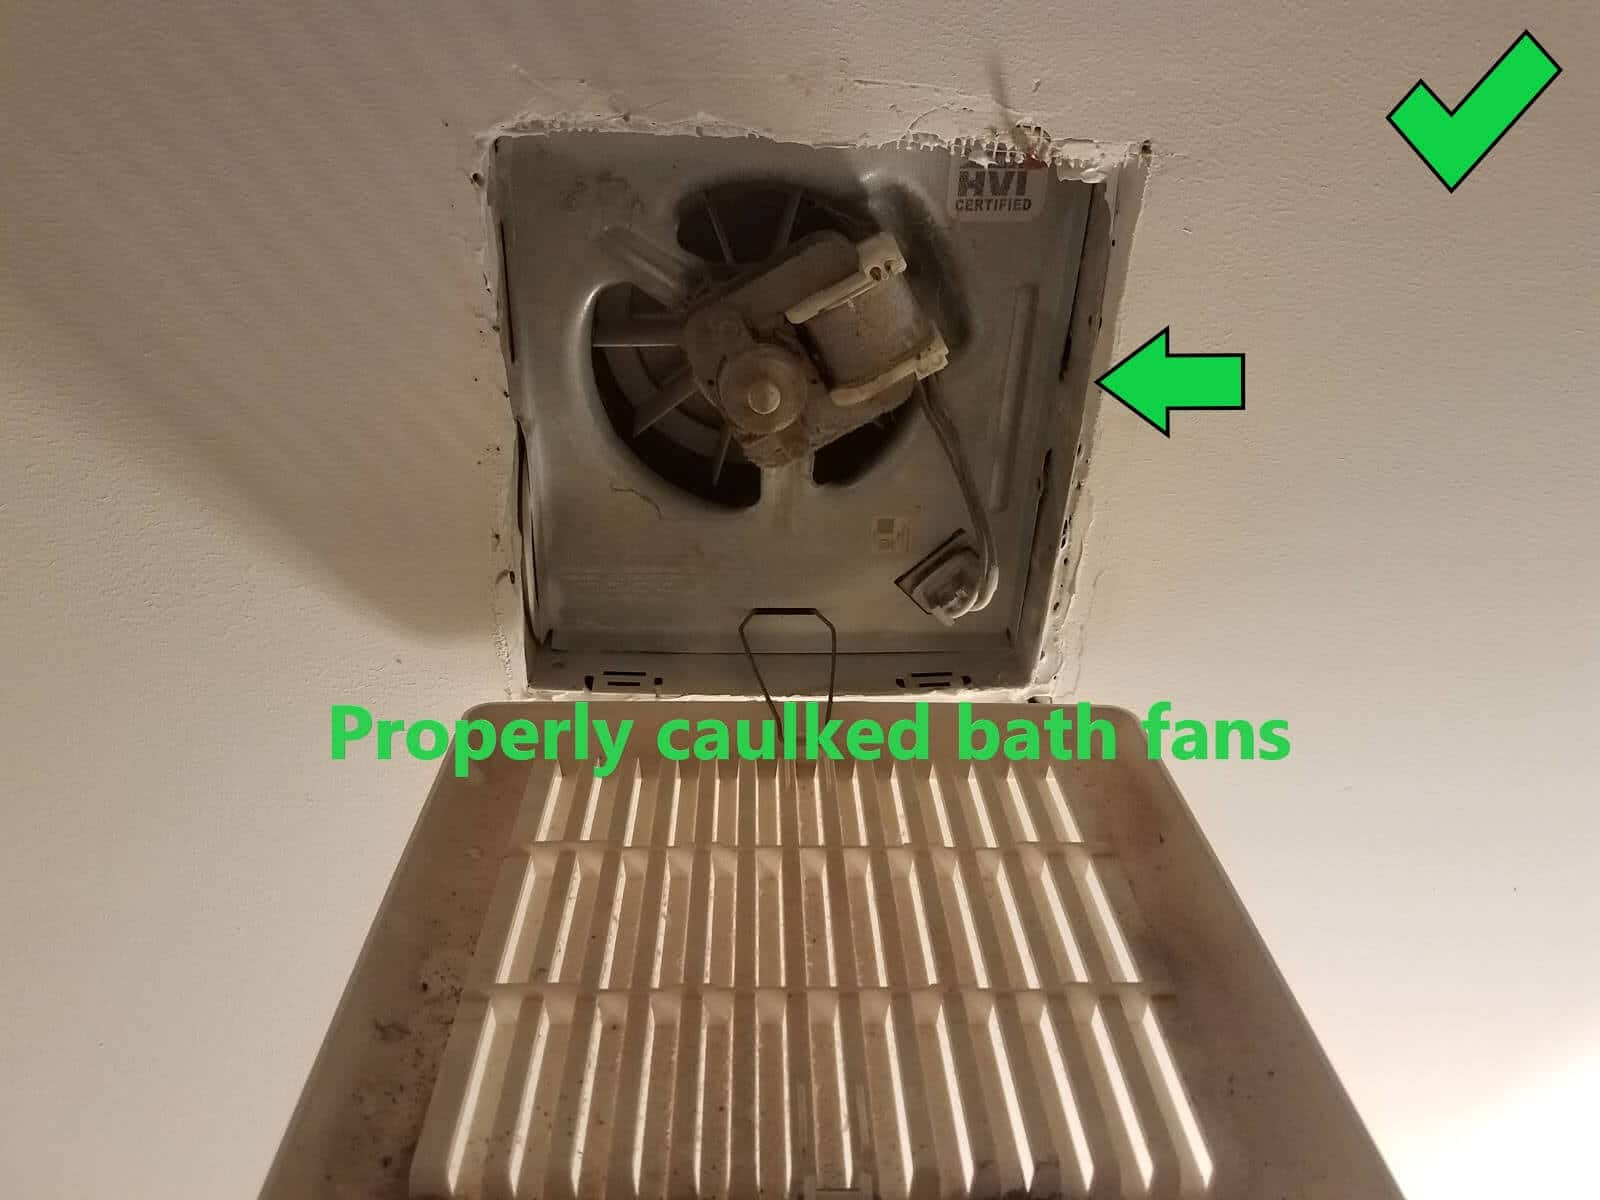 Example of a bath fan that has been properly caulked to the sheetrock